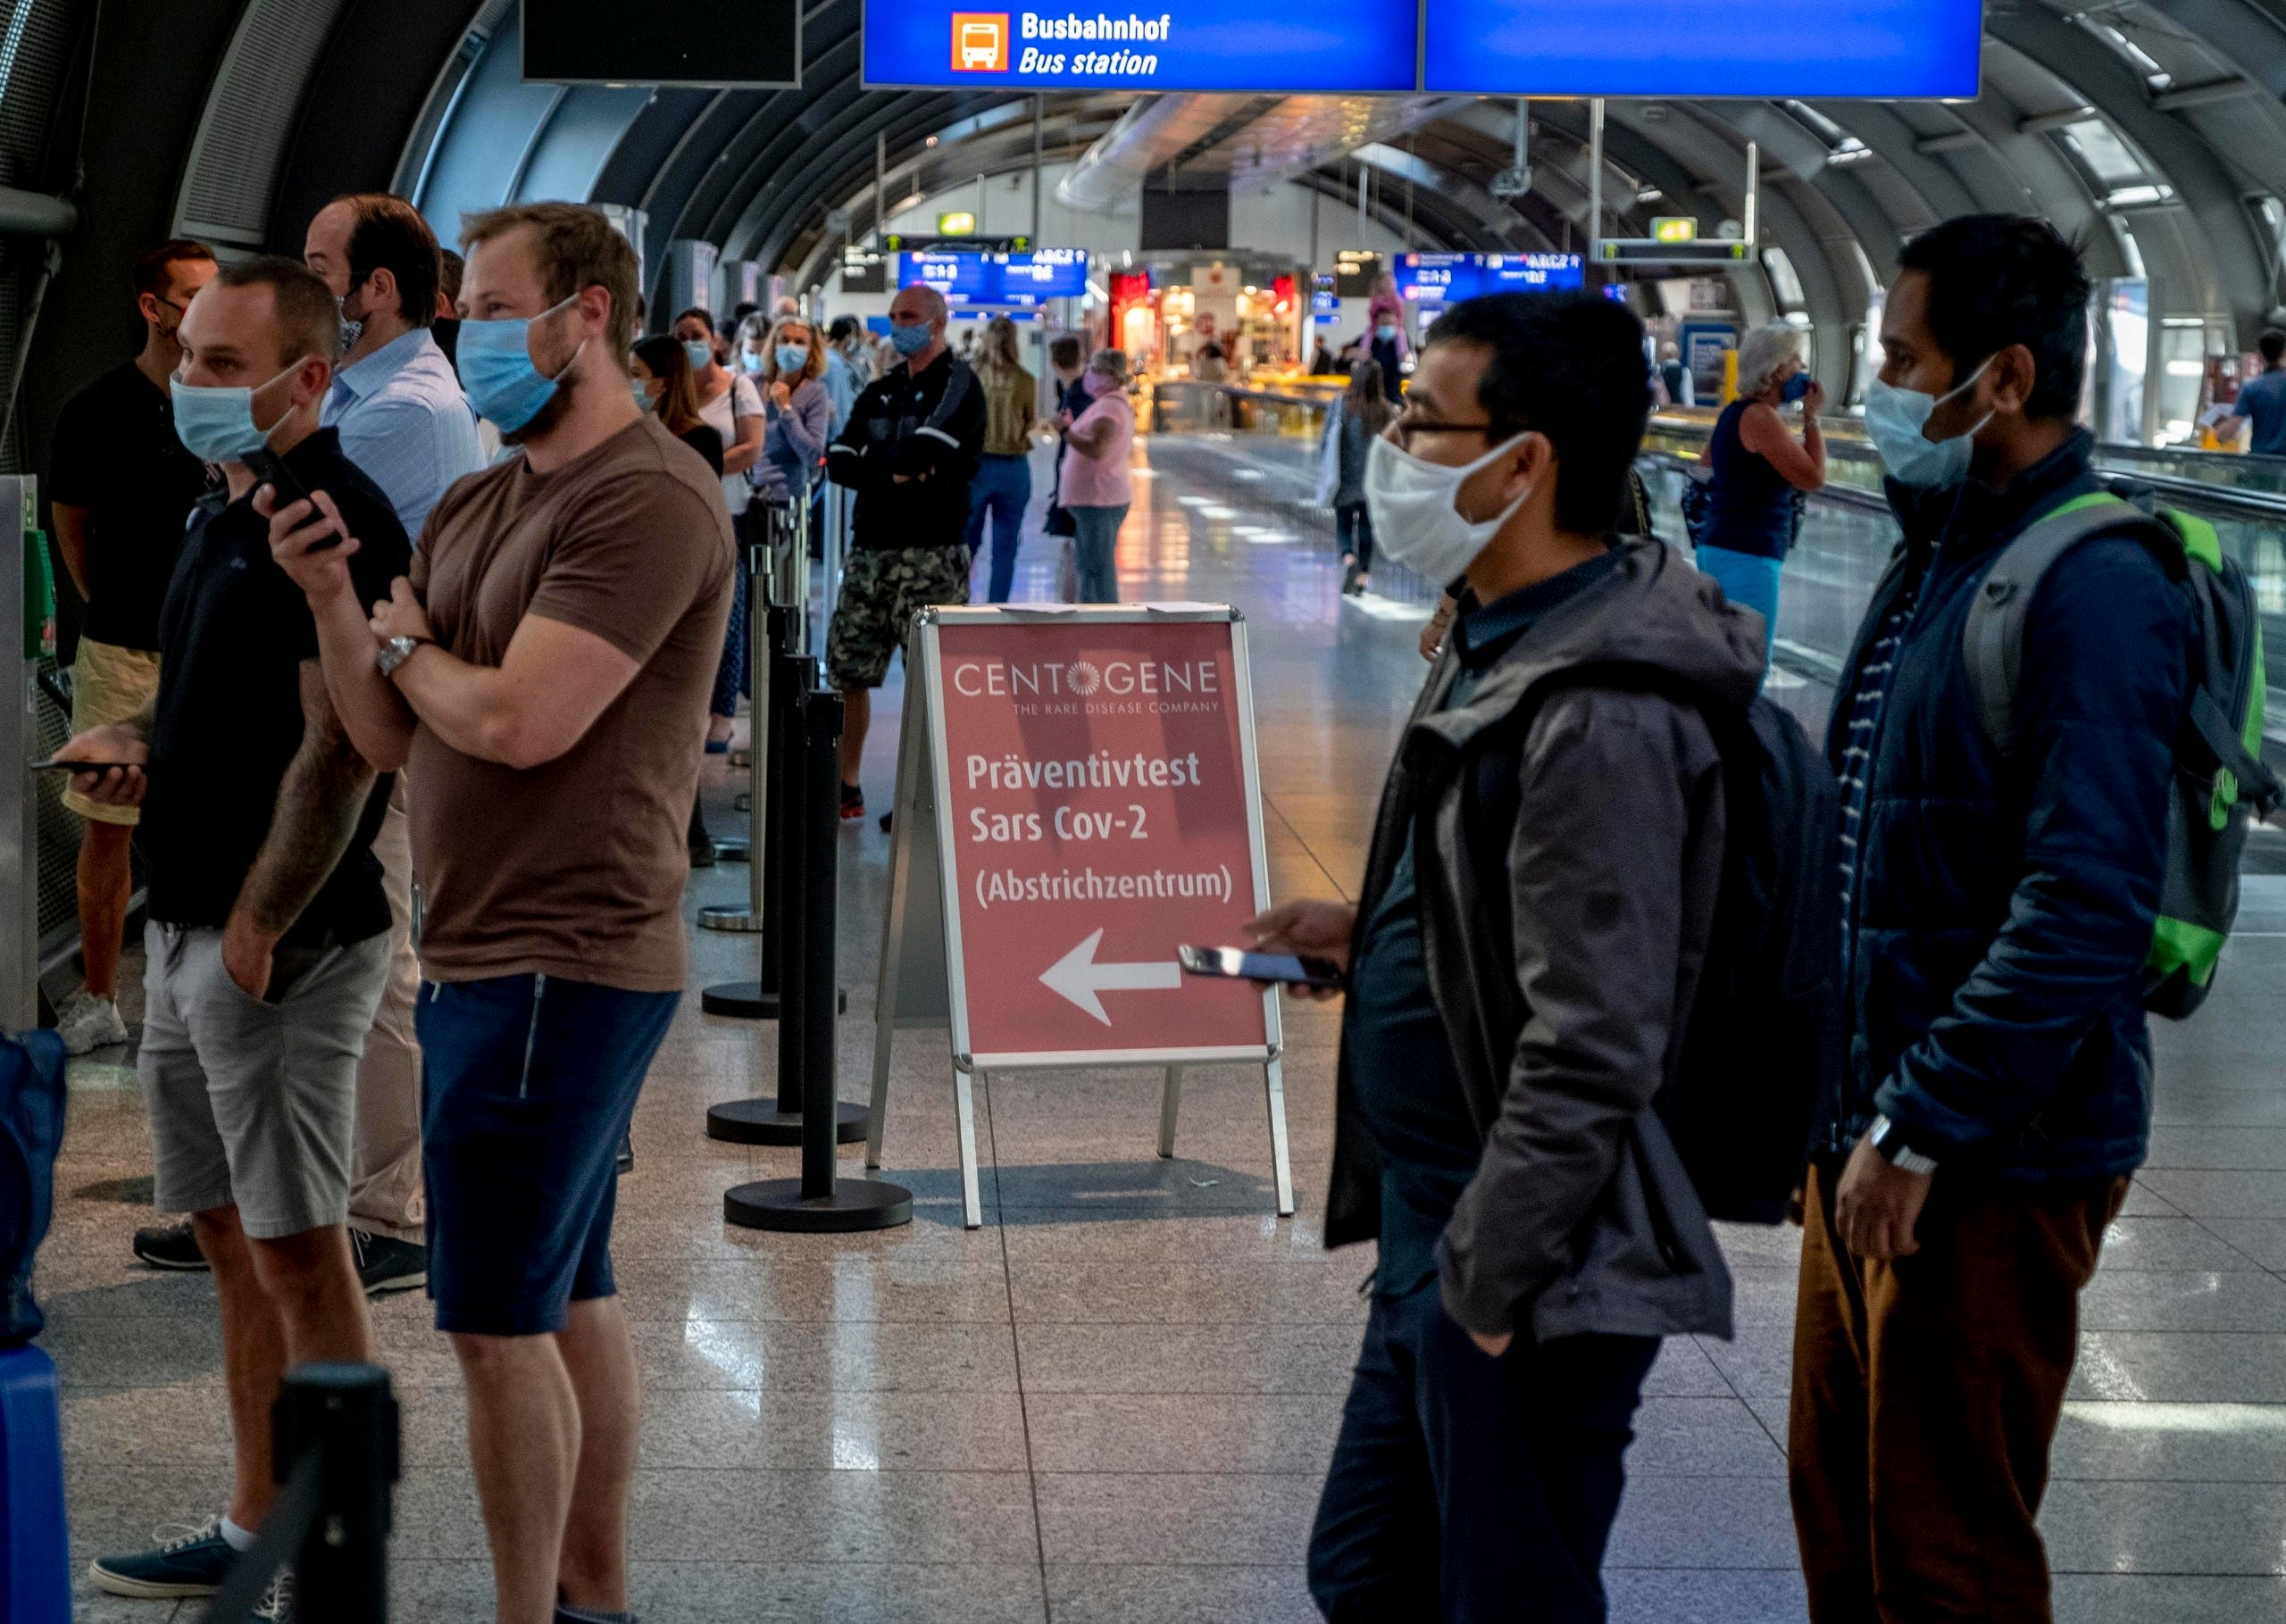 Dozens of passengers from various countries queue at the Centogene test center for a Covid-19 test at the airport in Frankfurt, Germany on July 24, 2020. (AP)